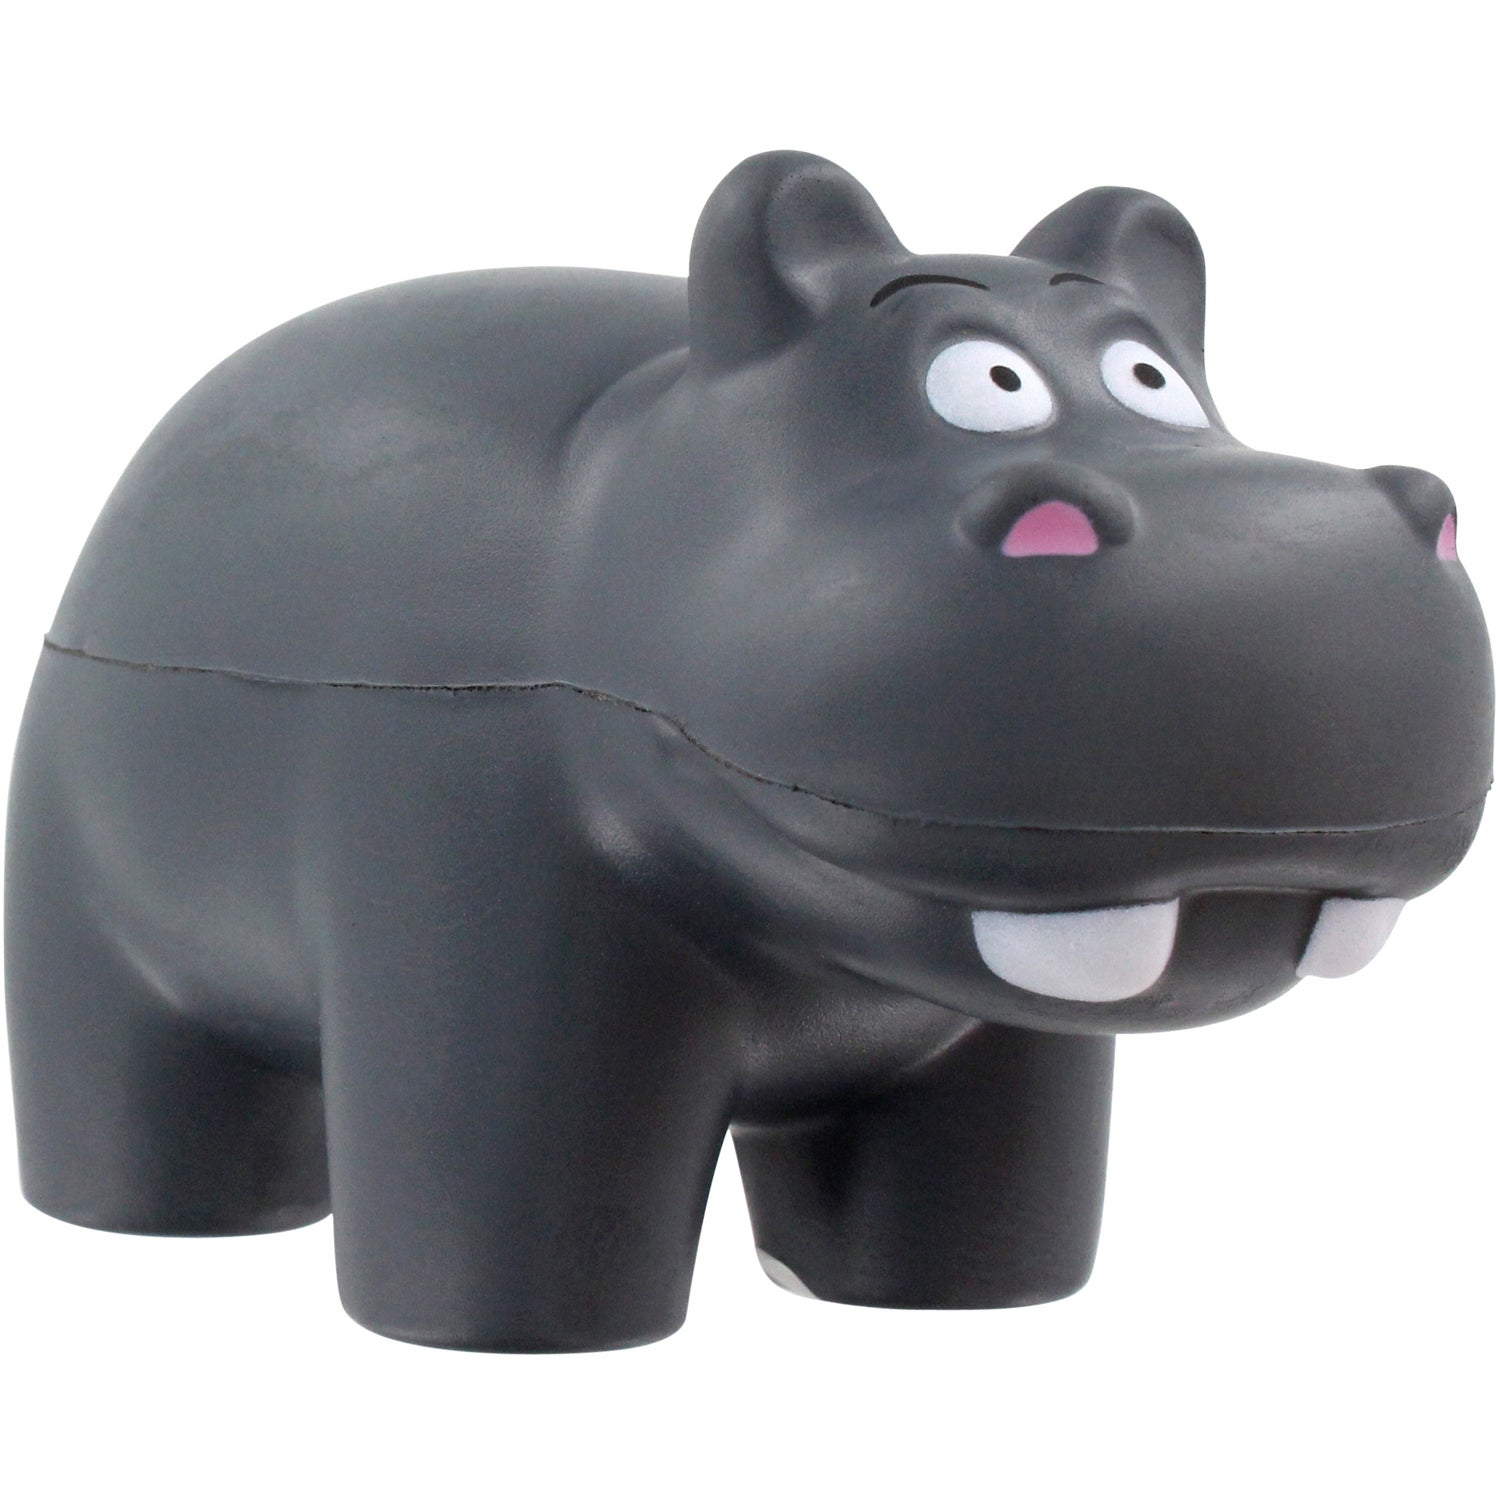 Hippo Stress Ball